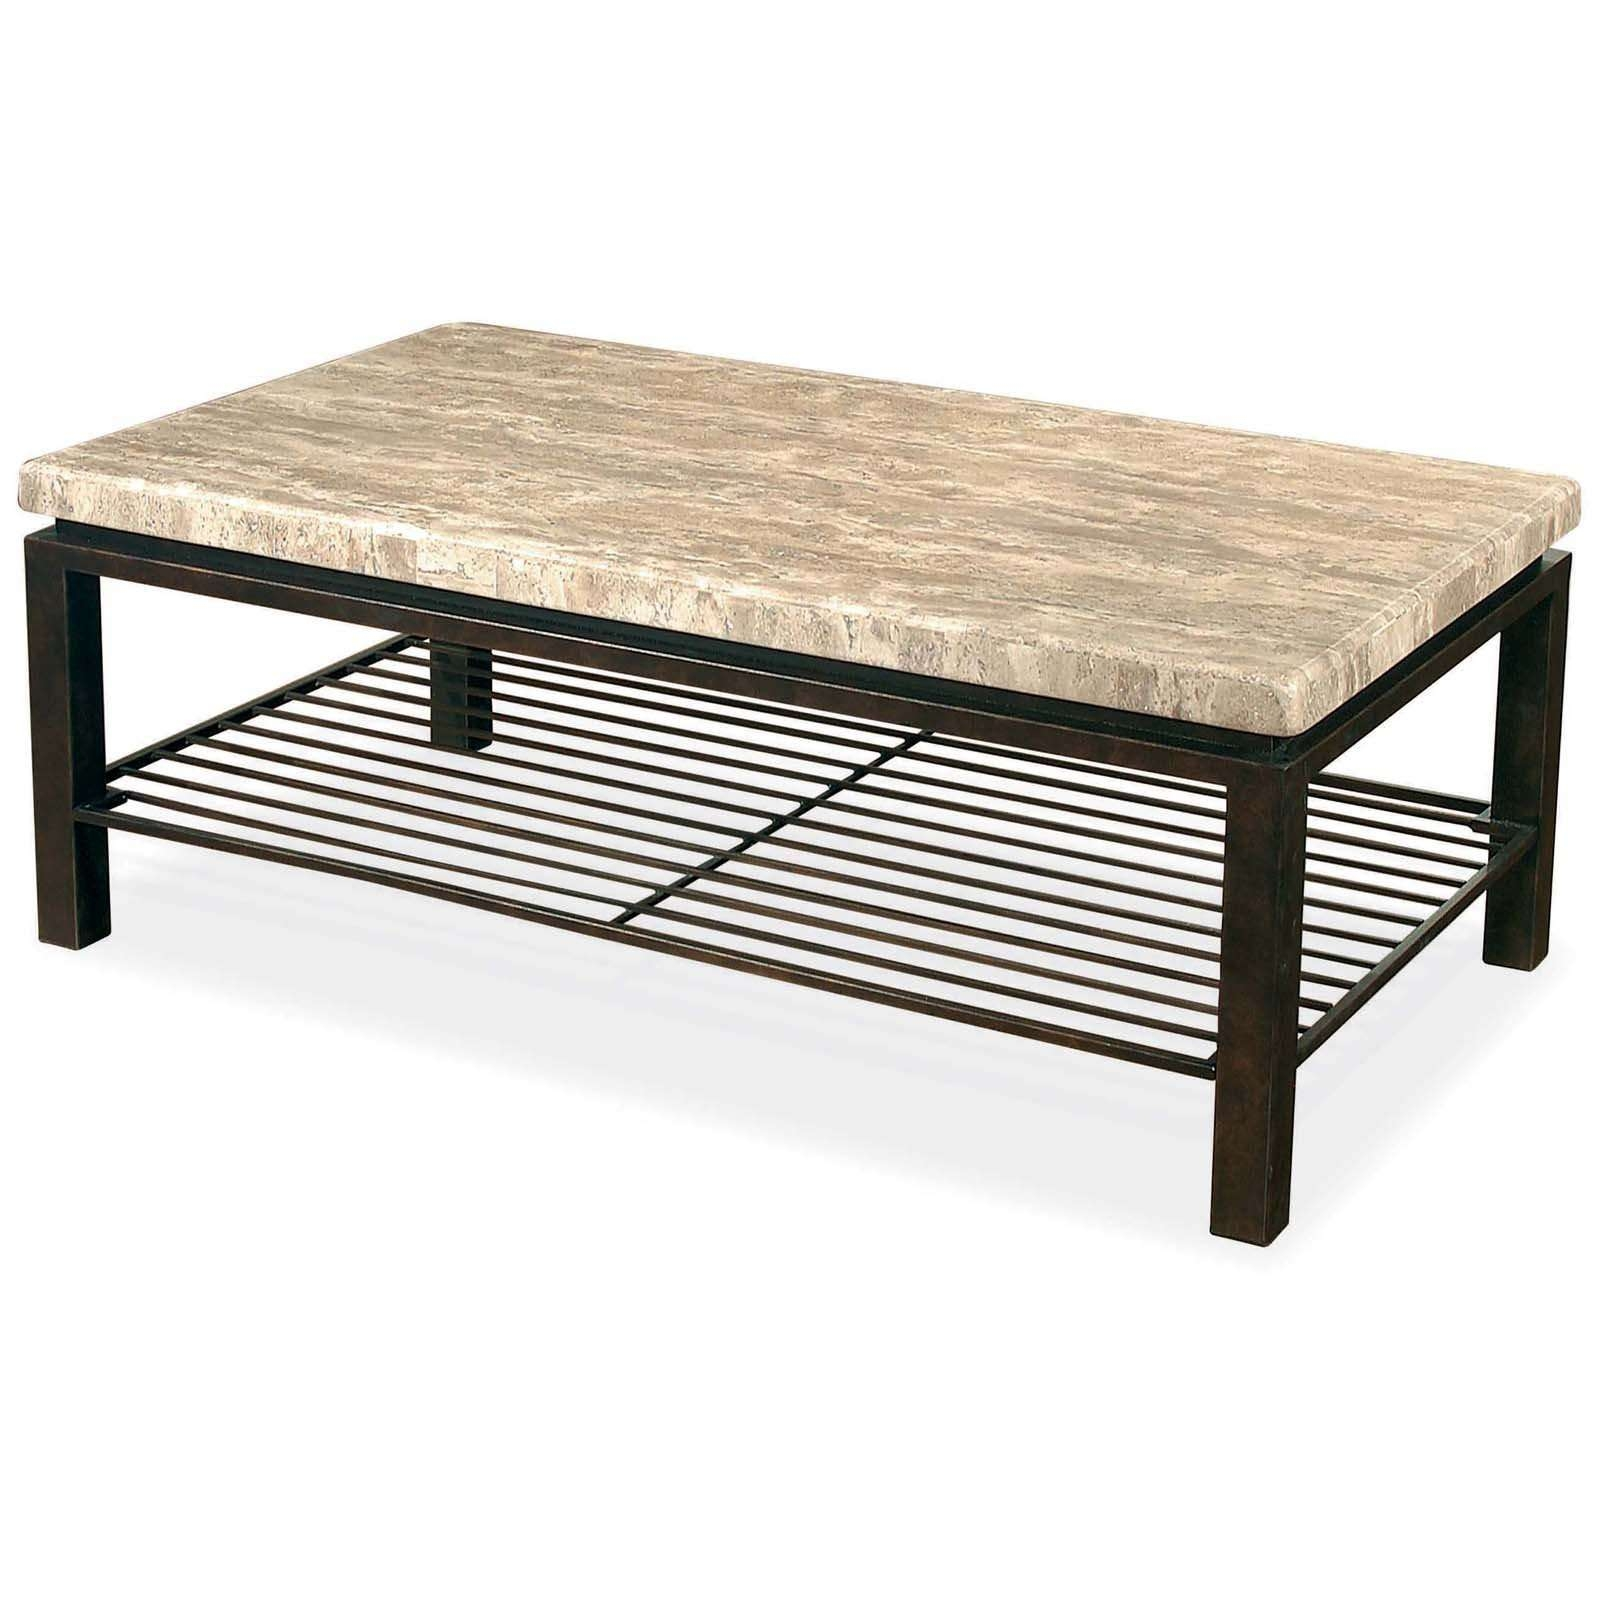 Newest Square Stone Coffee Tables Throughout Coffee Table, Low Stone Coffee Table Picture Of Narrow Square Wood (Gallery 12 of 20)